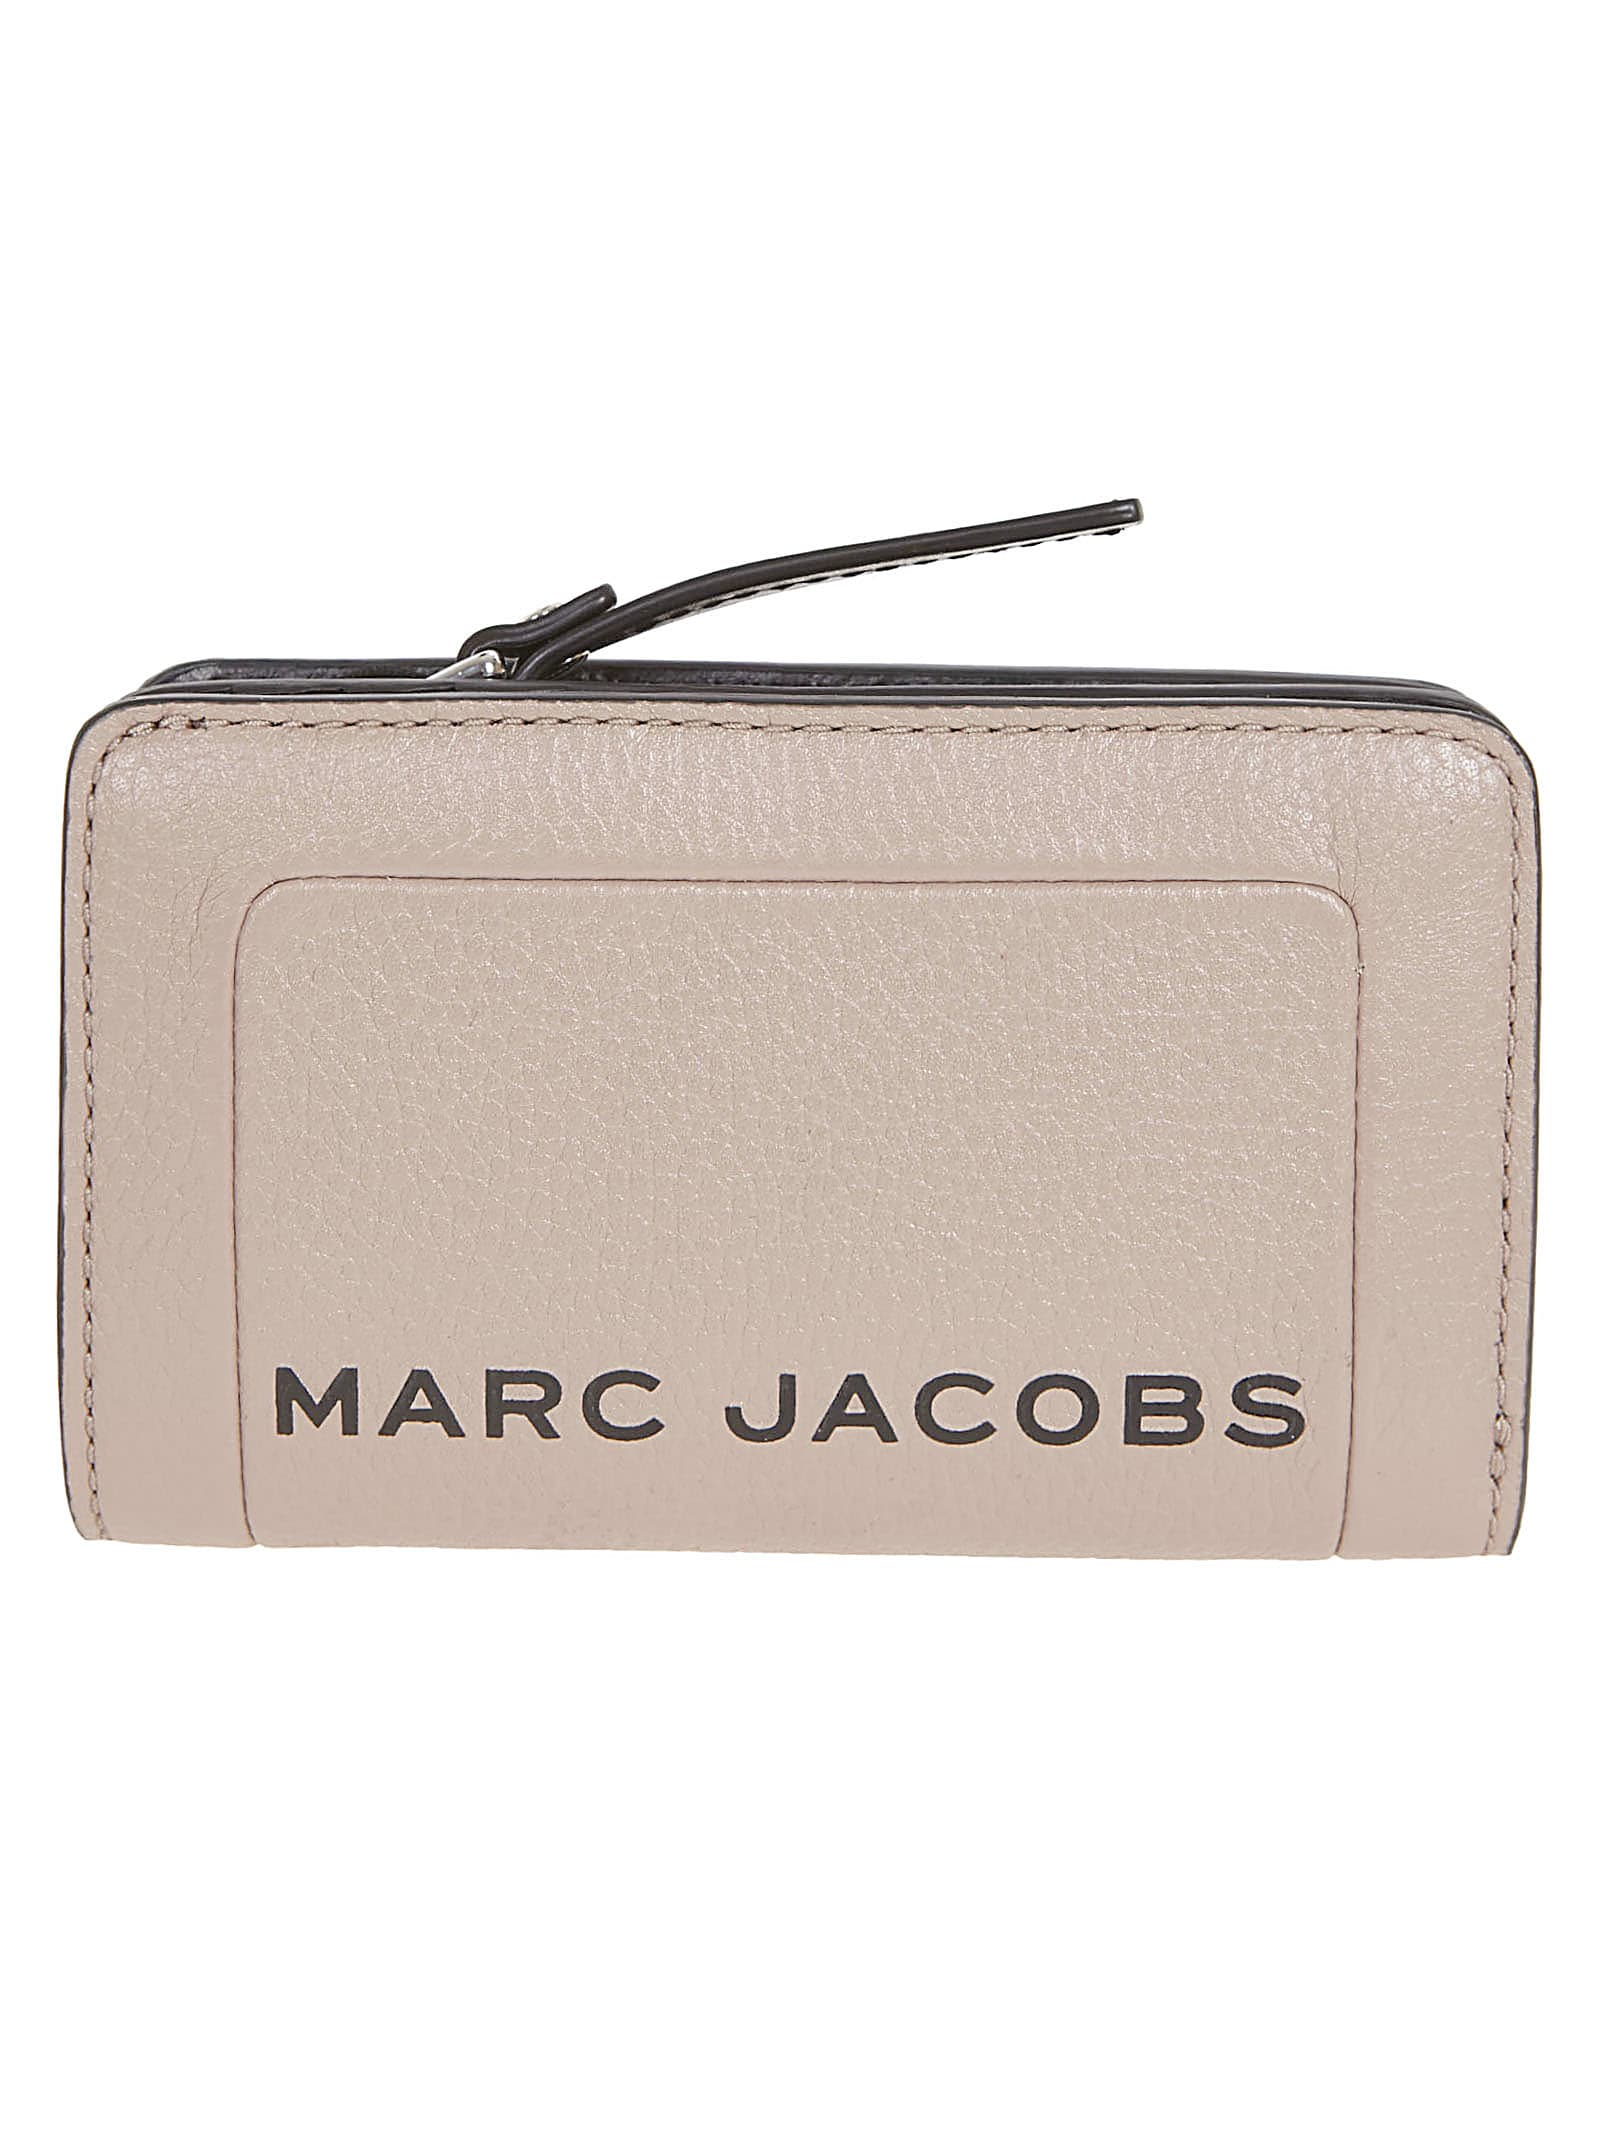 Marc Jacobs Logo Printed Zip-around Wallet